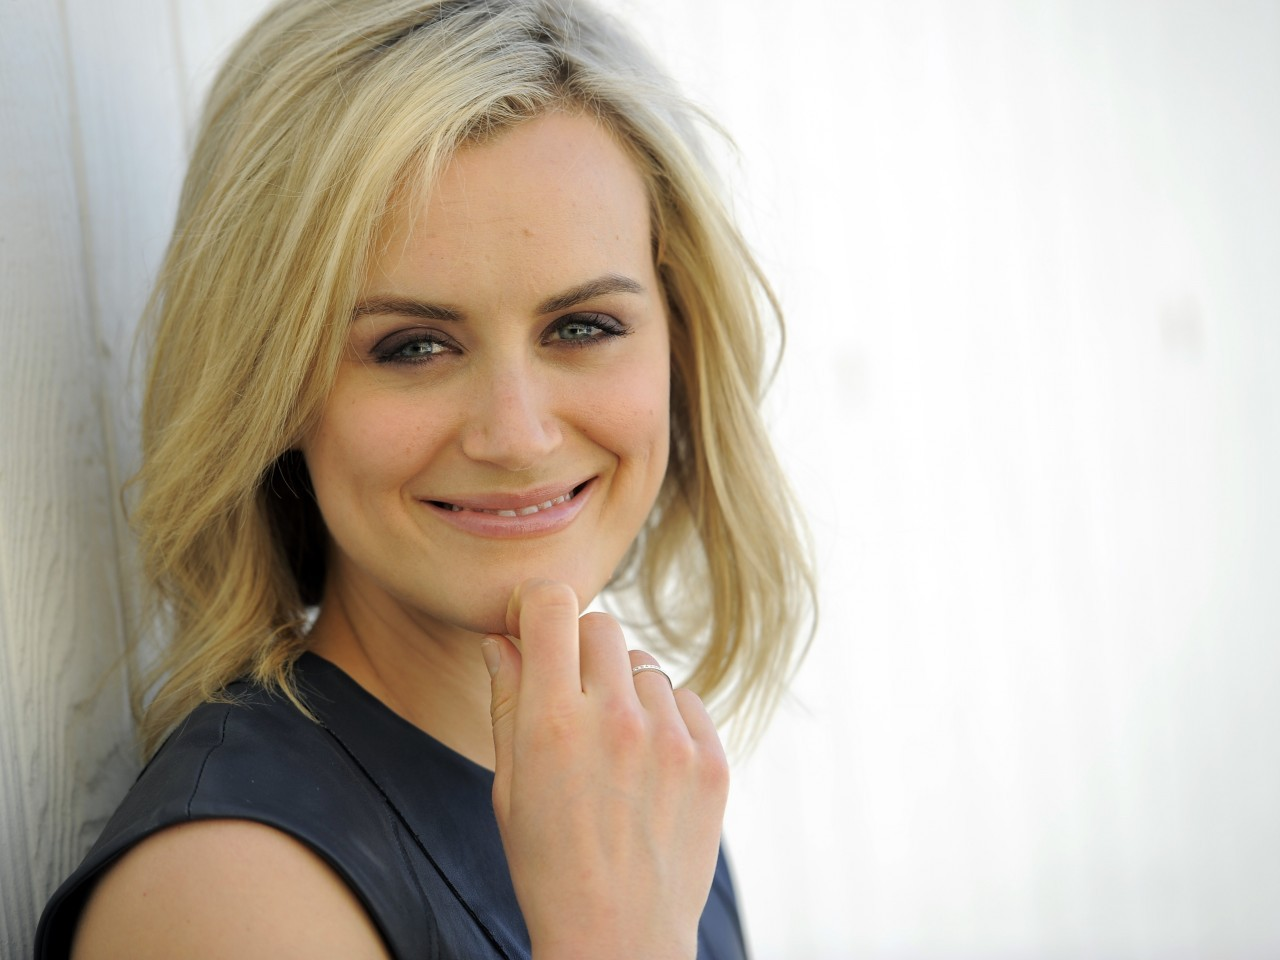 taylor schilling wallpaper pictures 55947